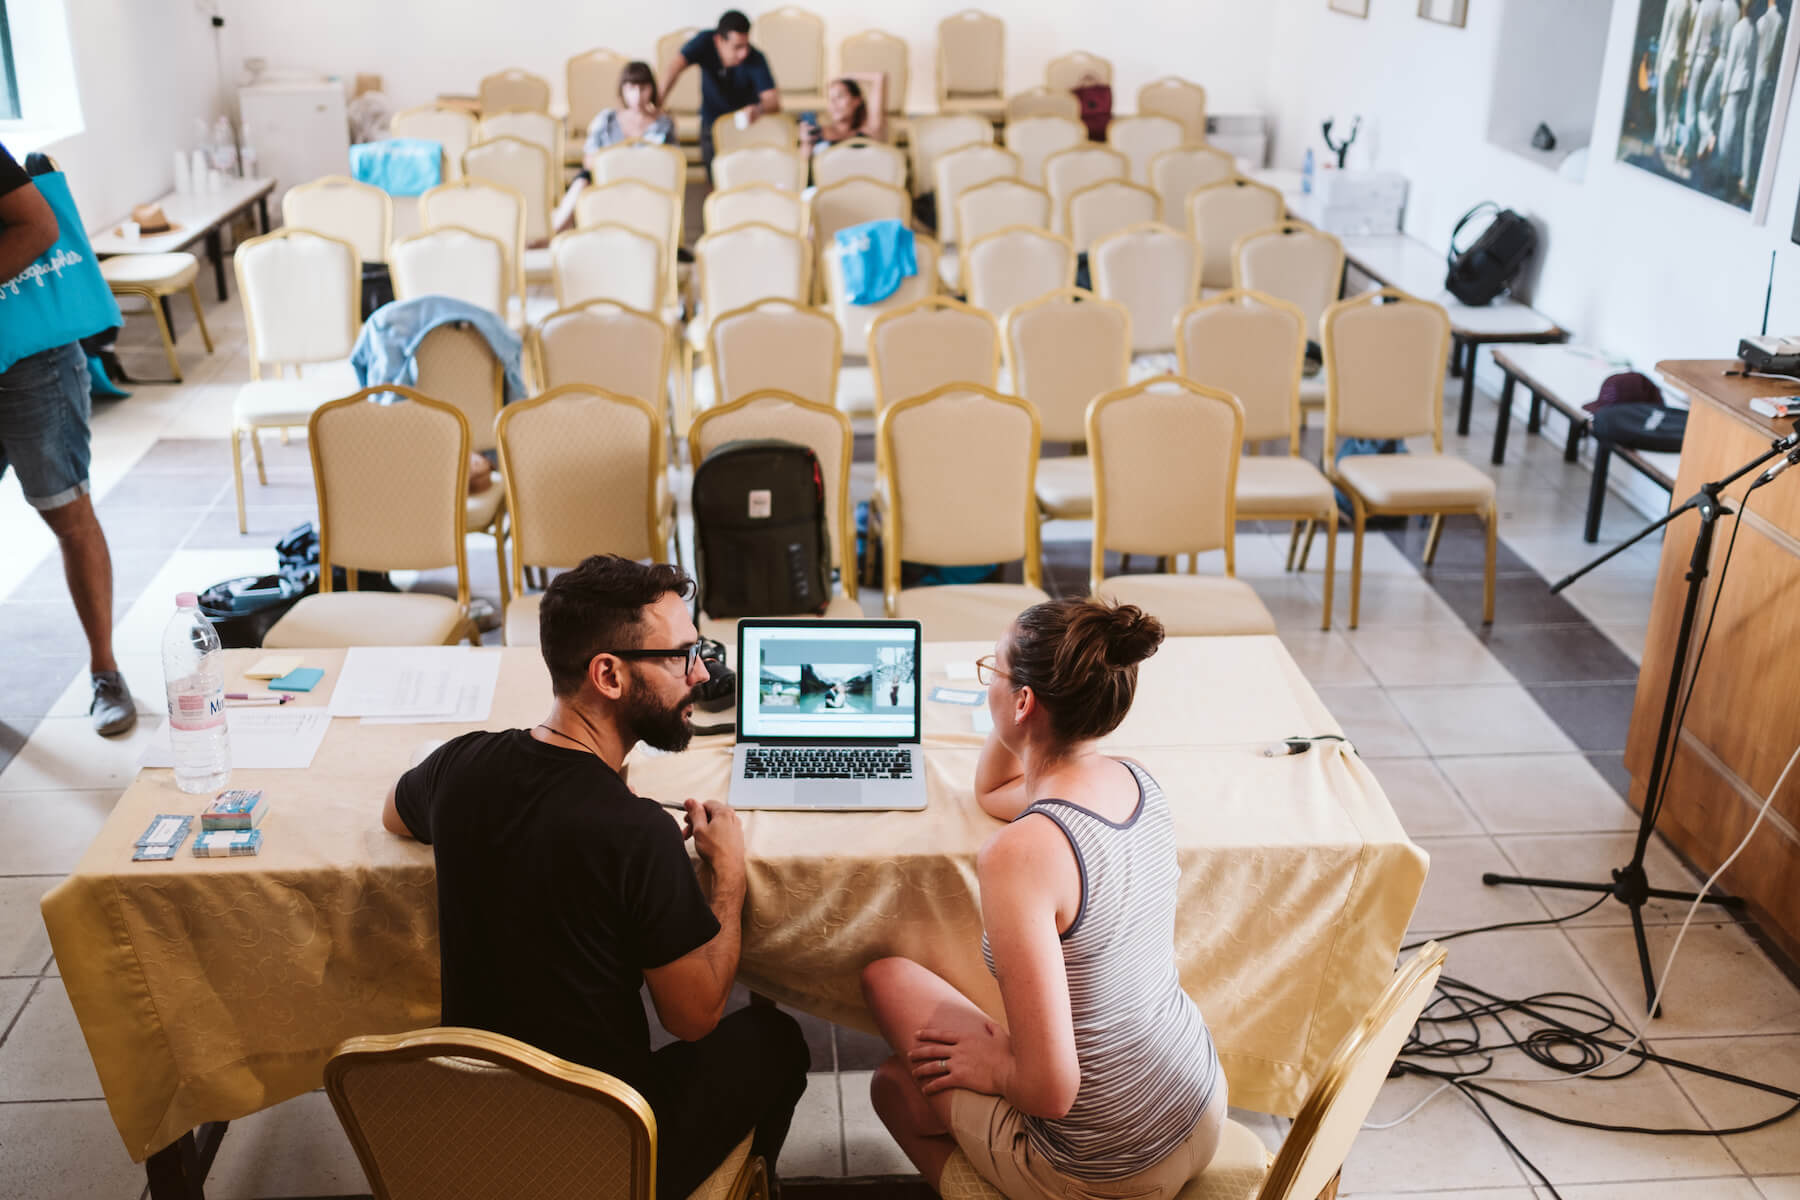 Two people talking around a laptop screen in a conference room in Santorini, Greece